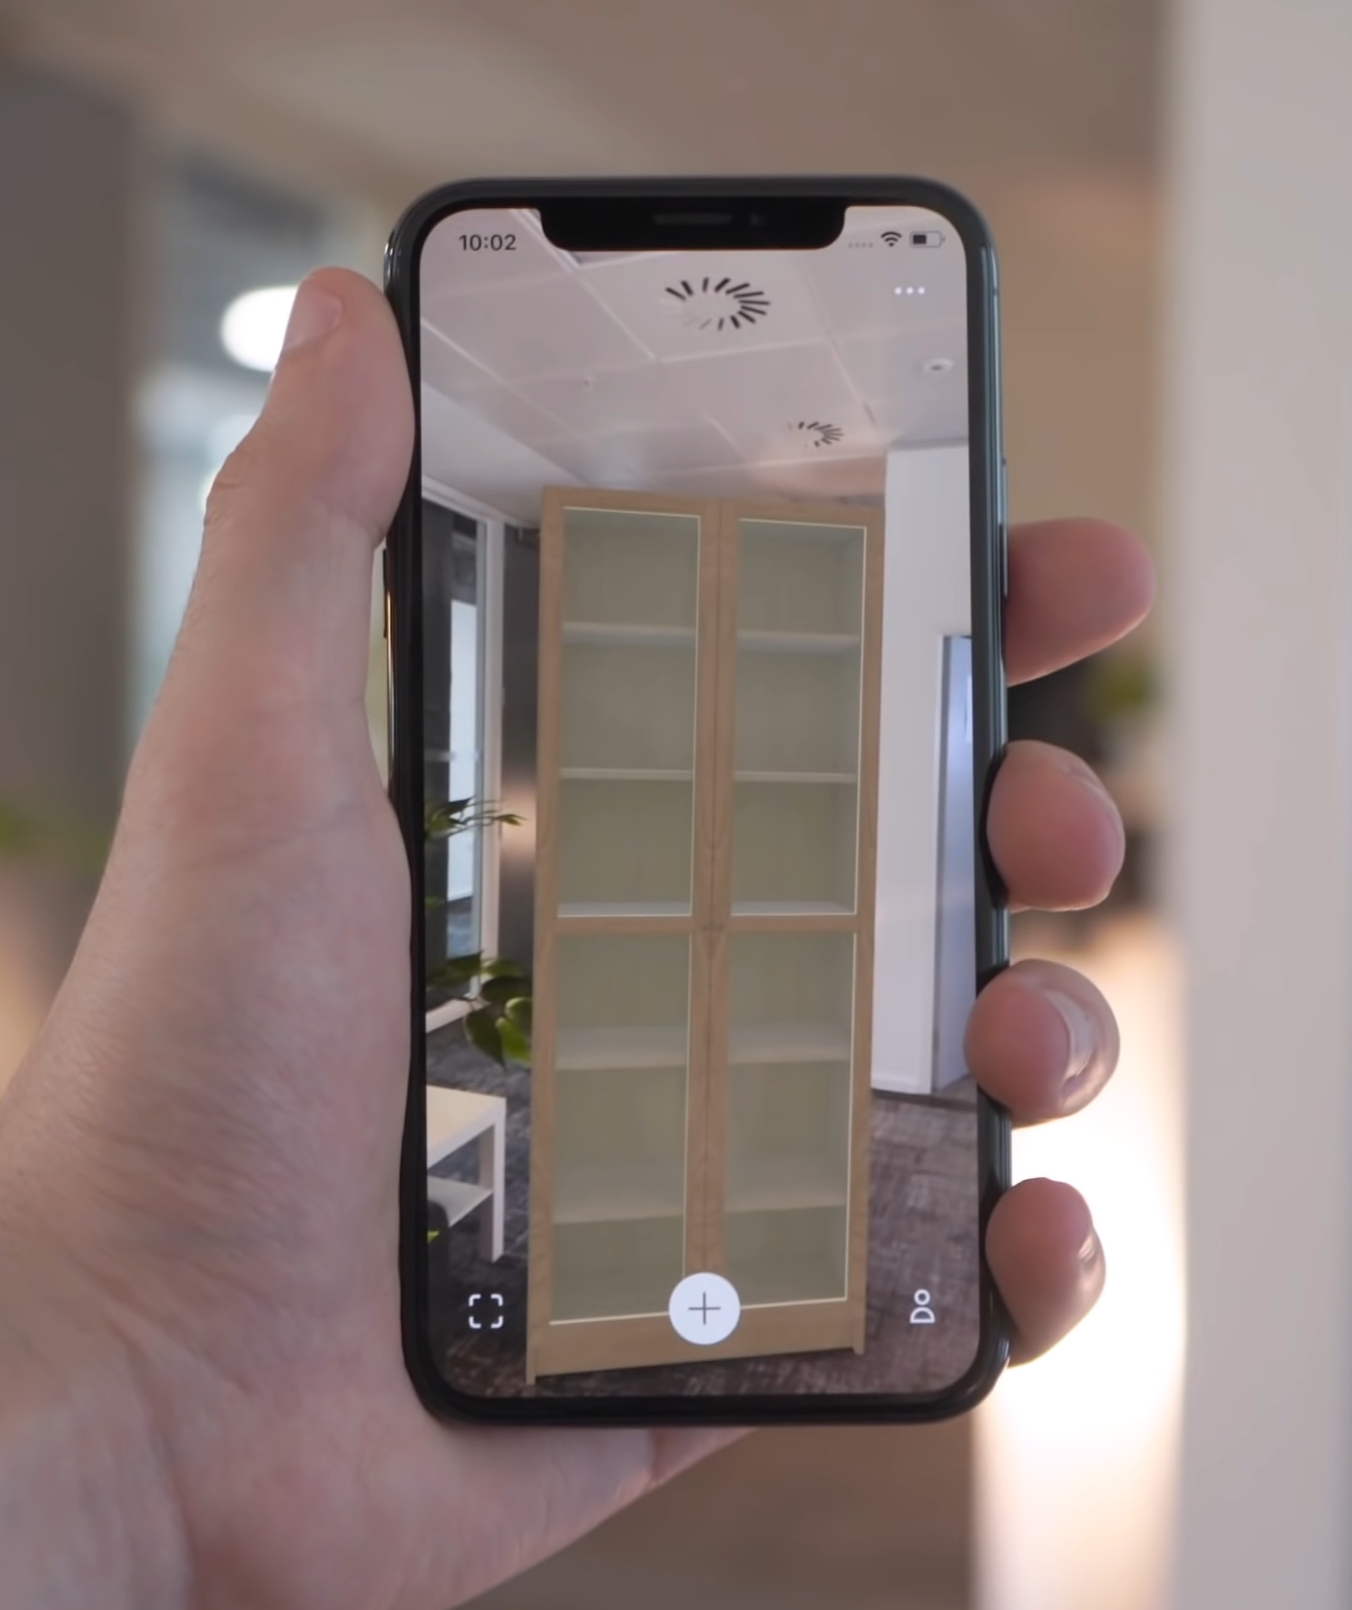 IKEA's Place app allows you to see how different items of furniture would fit within your home thanks to AR